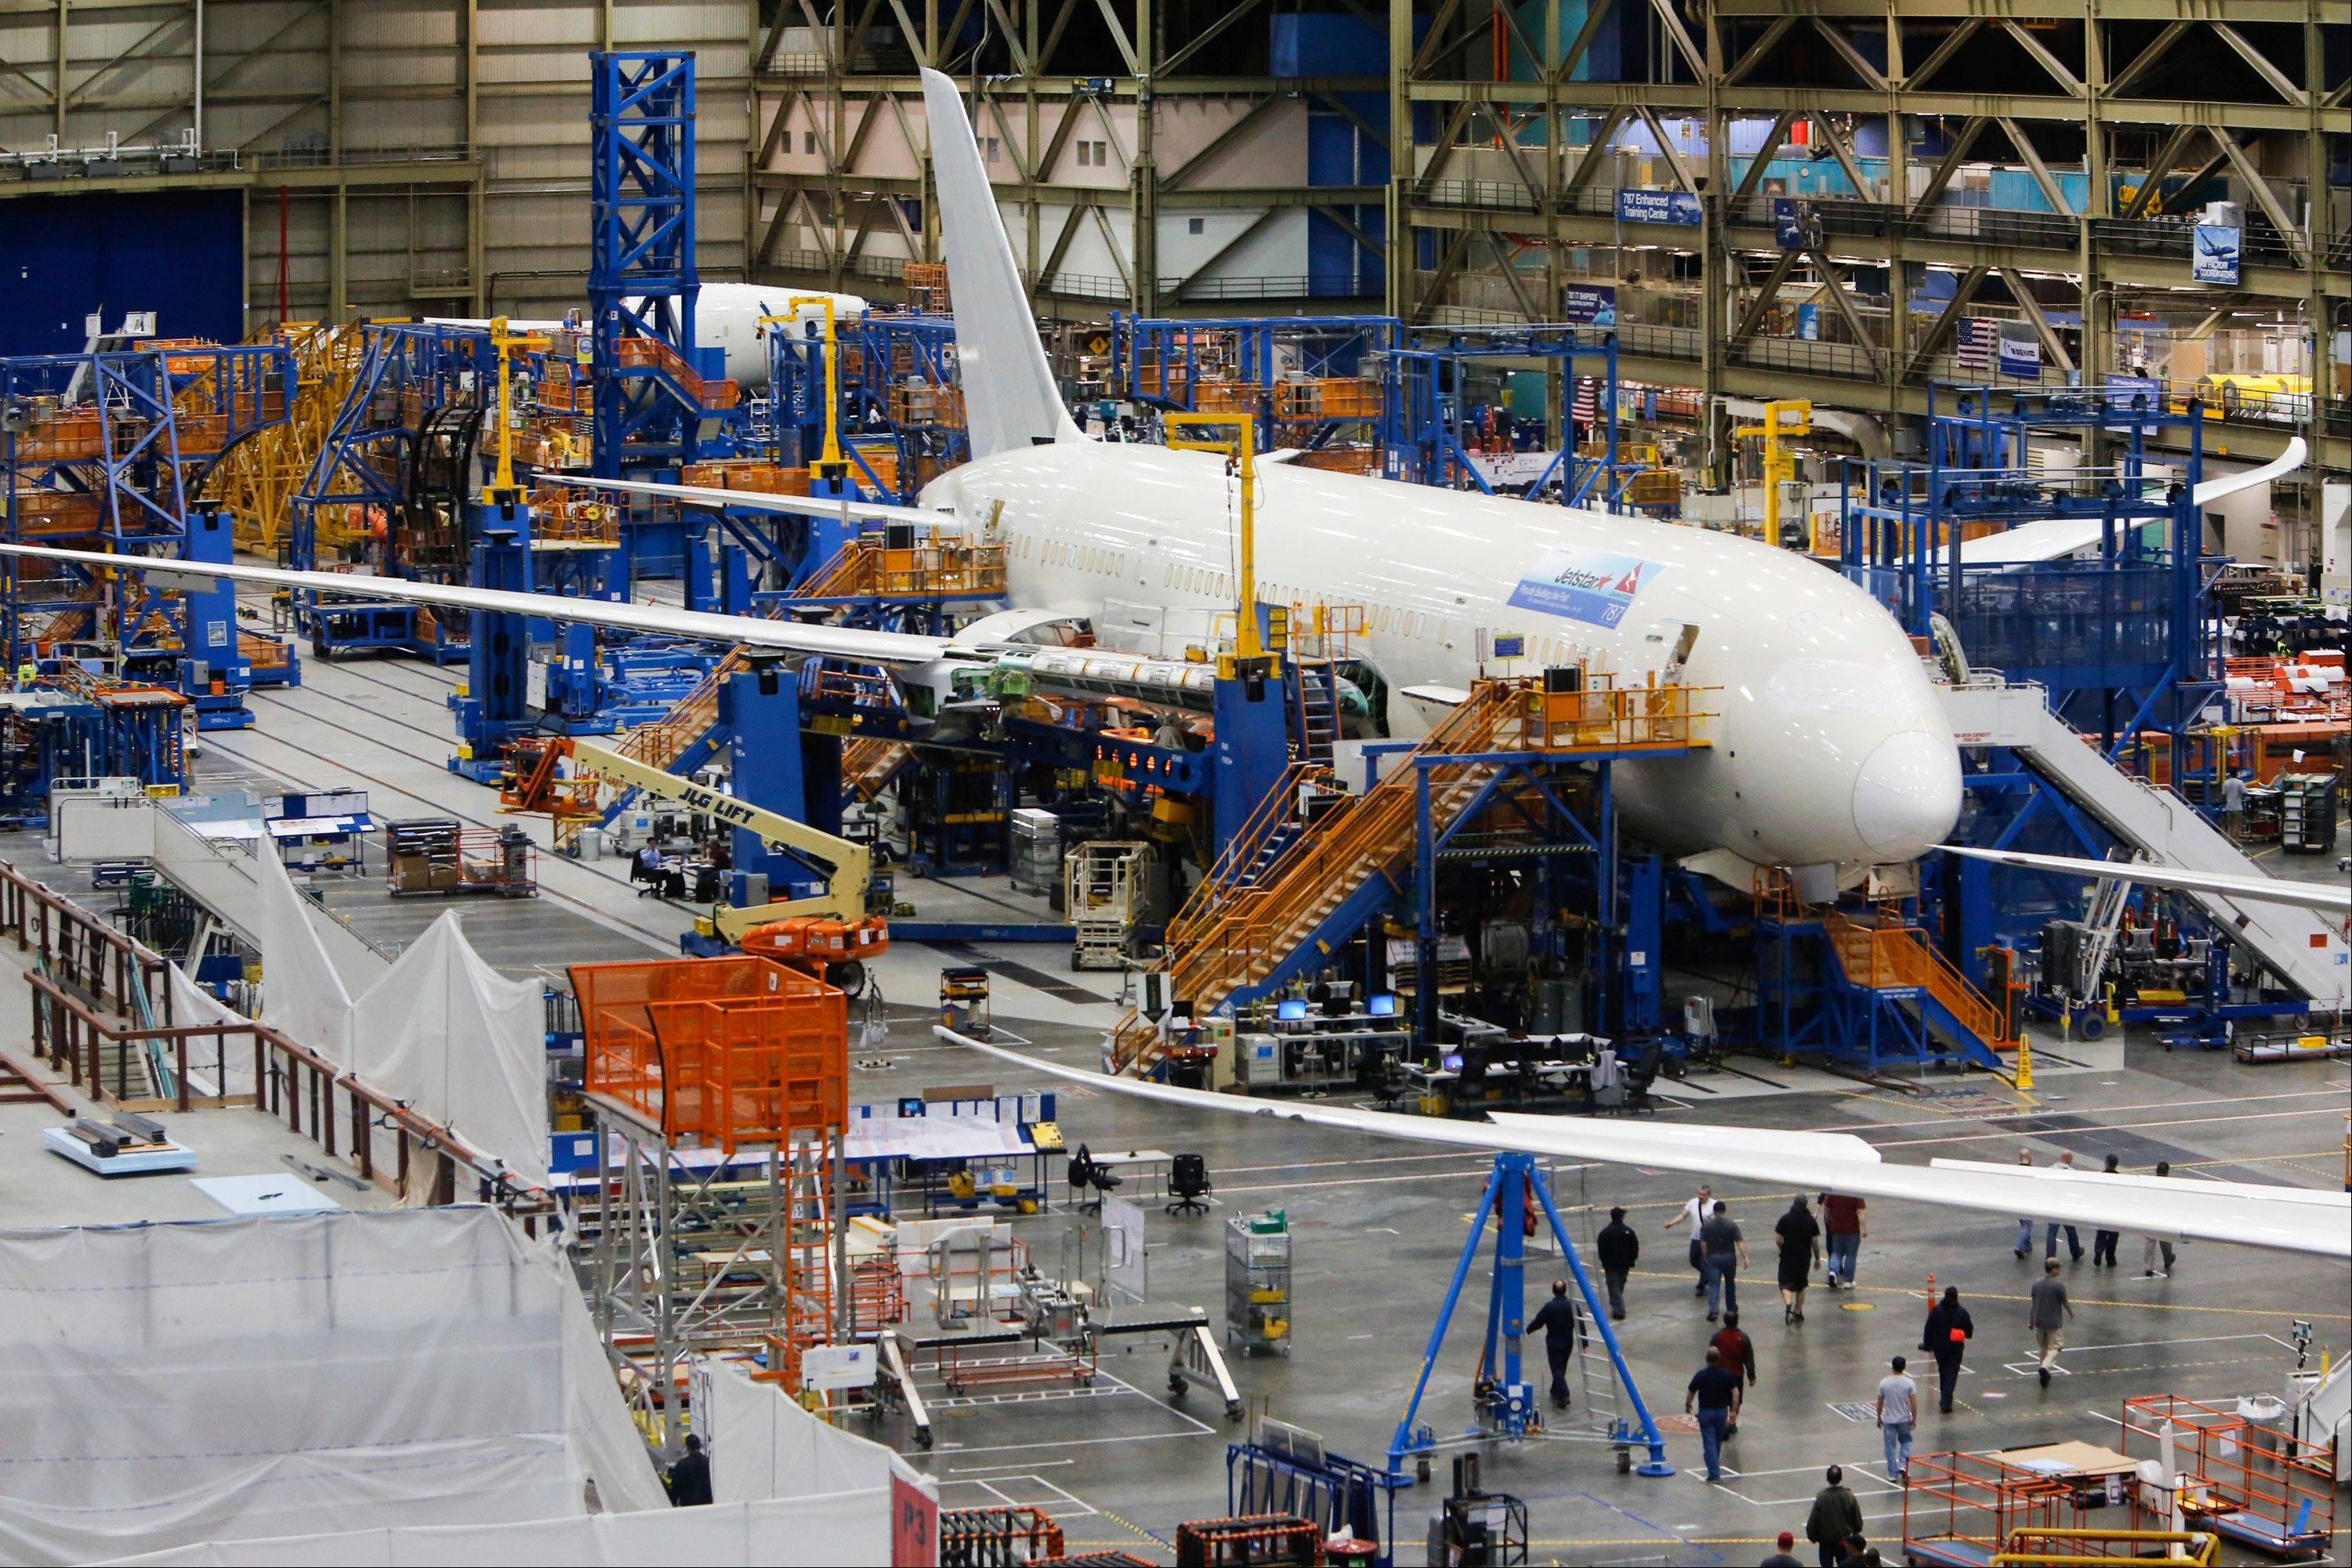 Workers assemble a Boeing Co. 787 Dreamliner airplane at the Boeing Everett Factory in Everett, Washington, U.S.